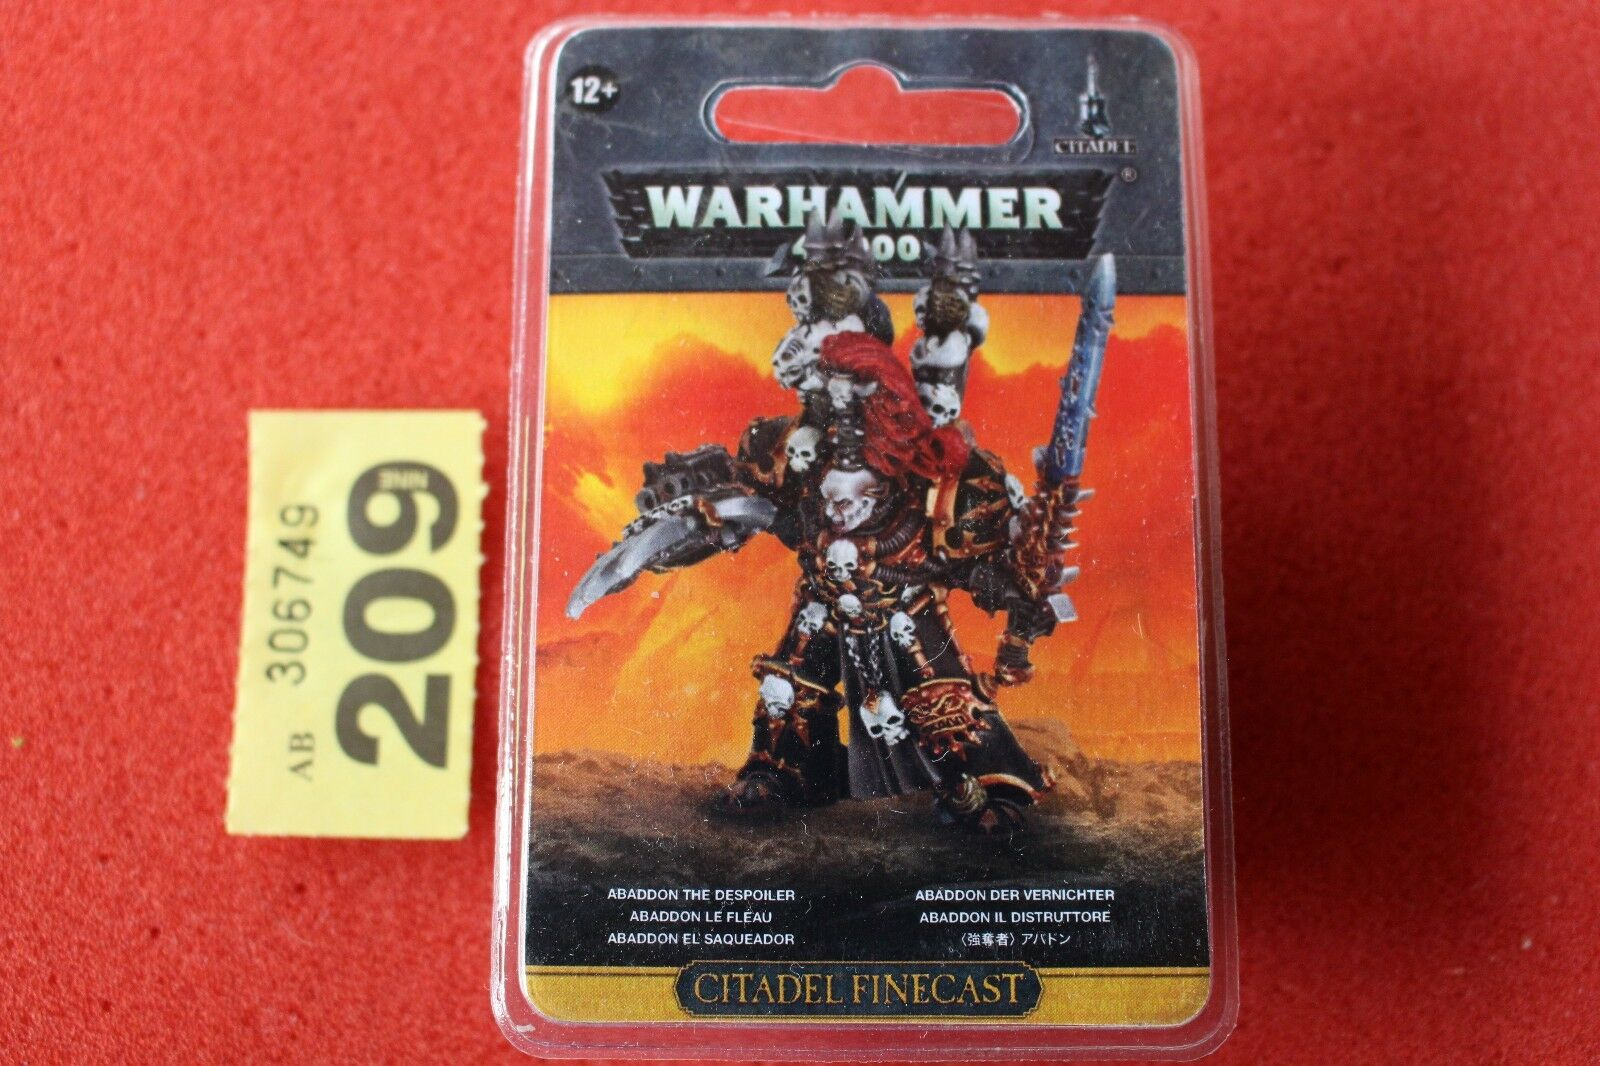 Games Workshop Warhammer 40k Abaddon the Despoiler Chaos Space Marines Finecast